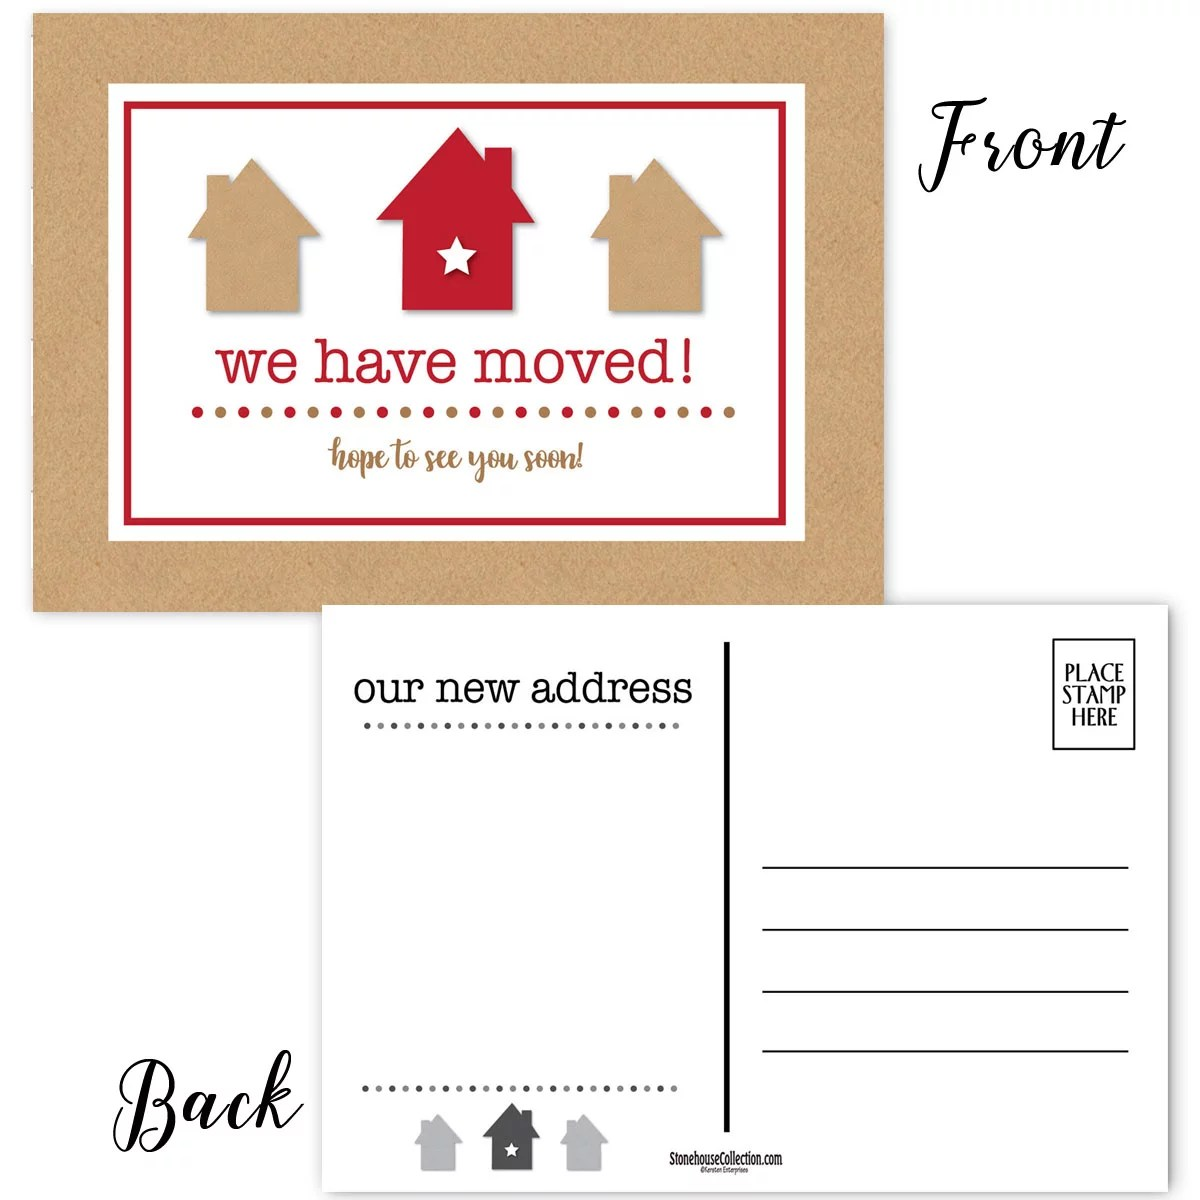 we have moved postcards